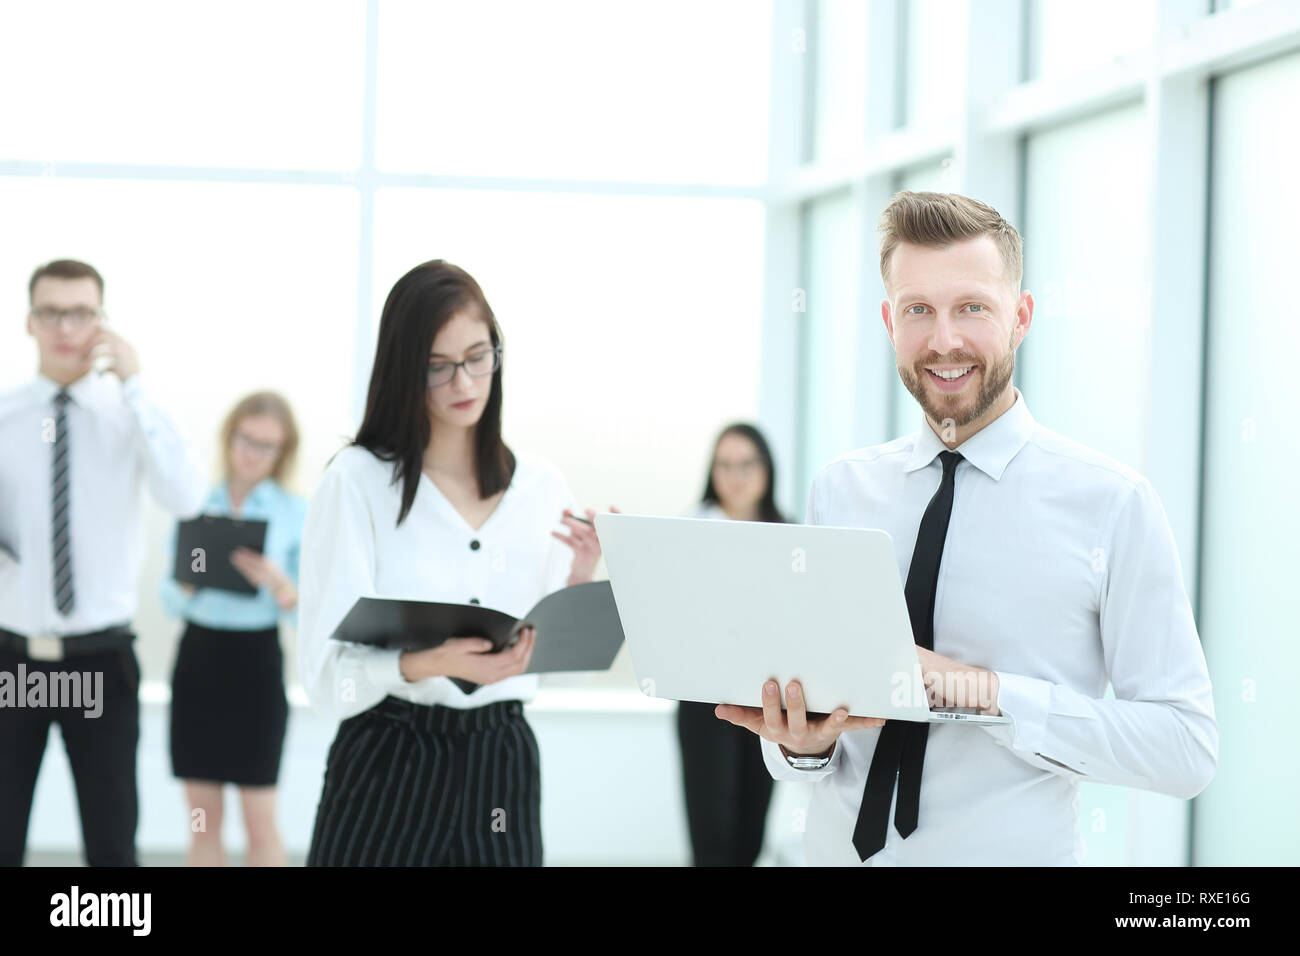 professional business team standing in the office lobby - Stock Image